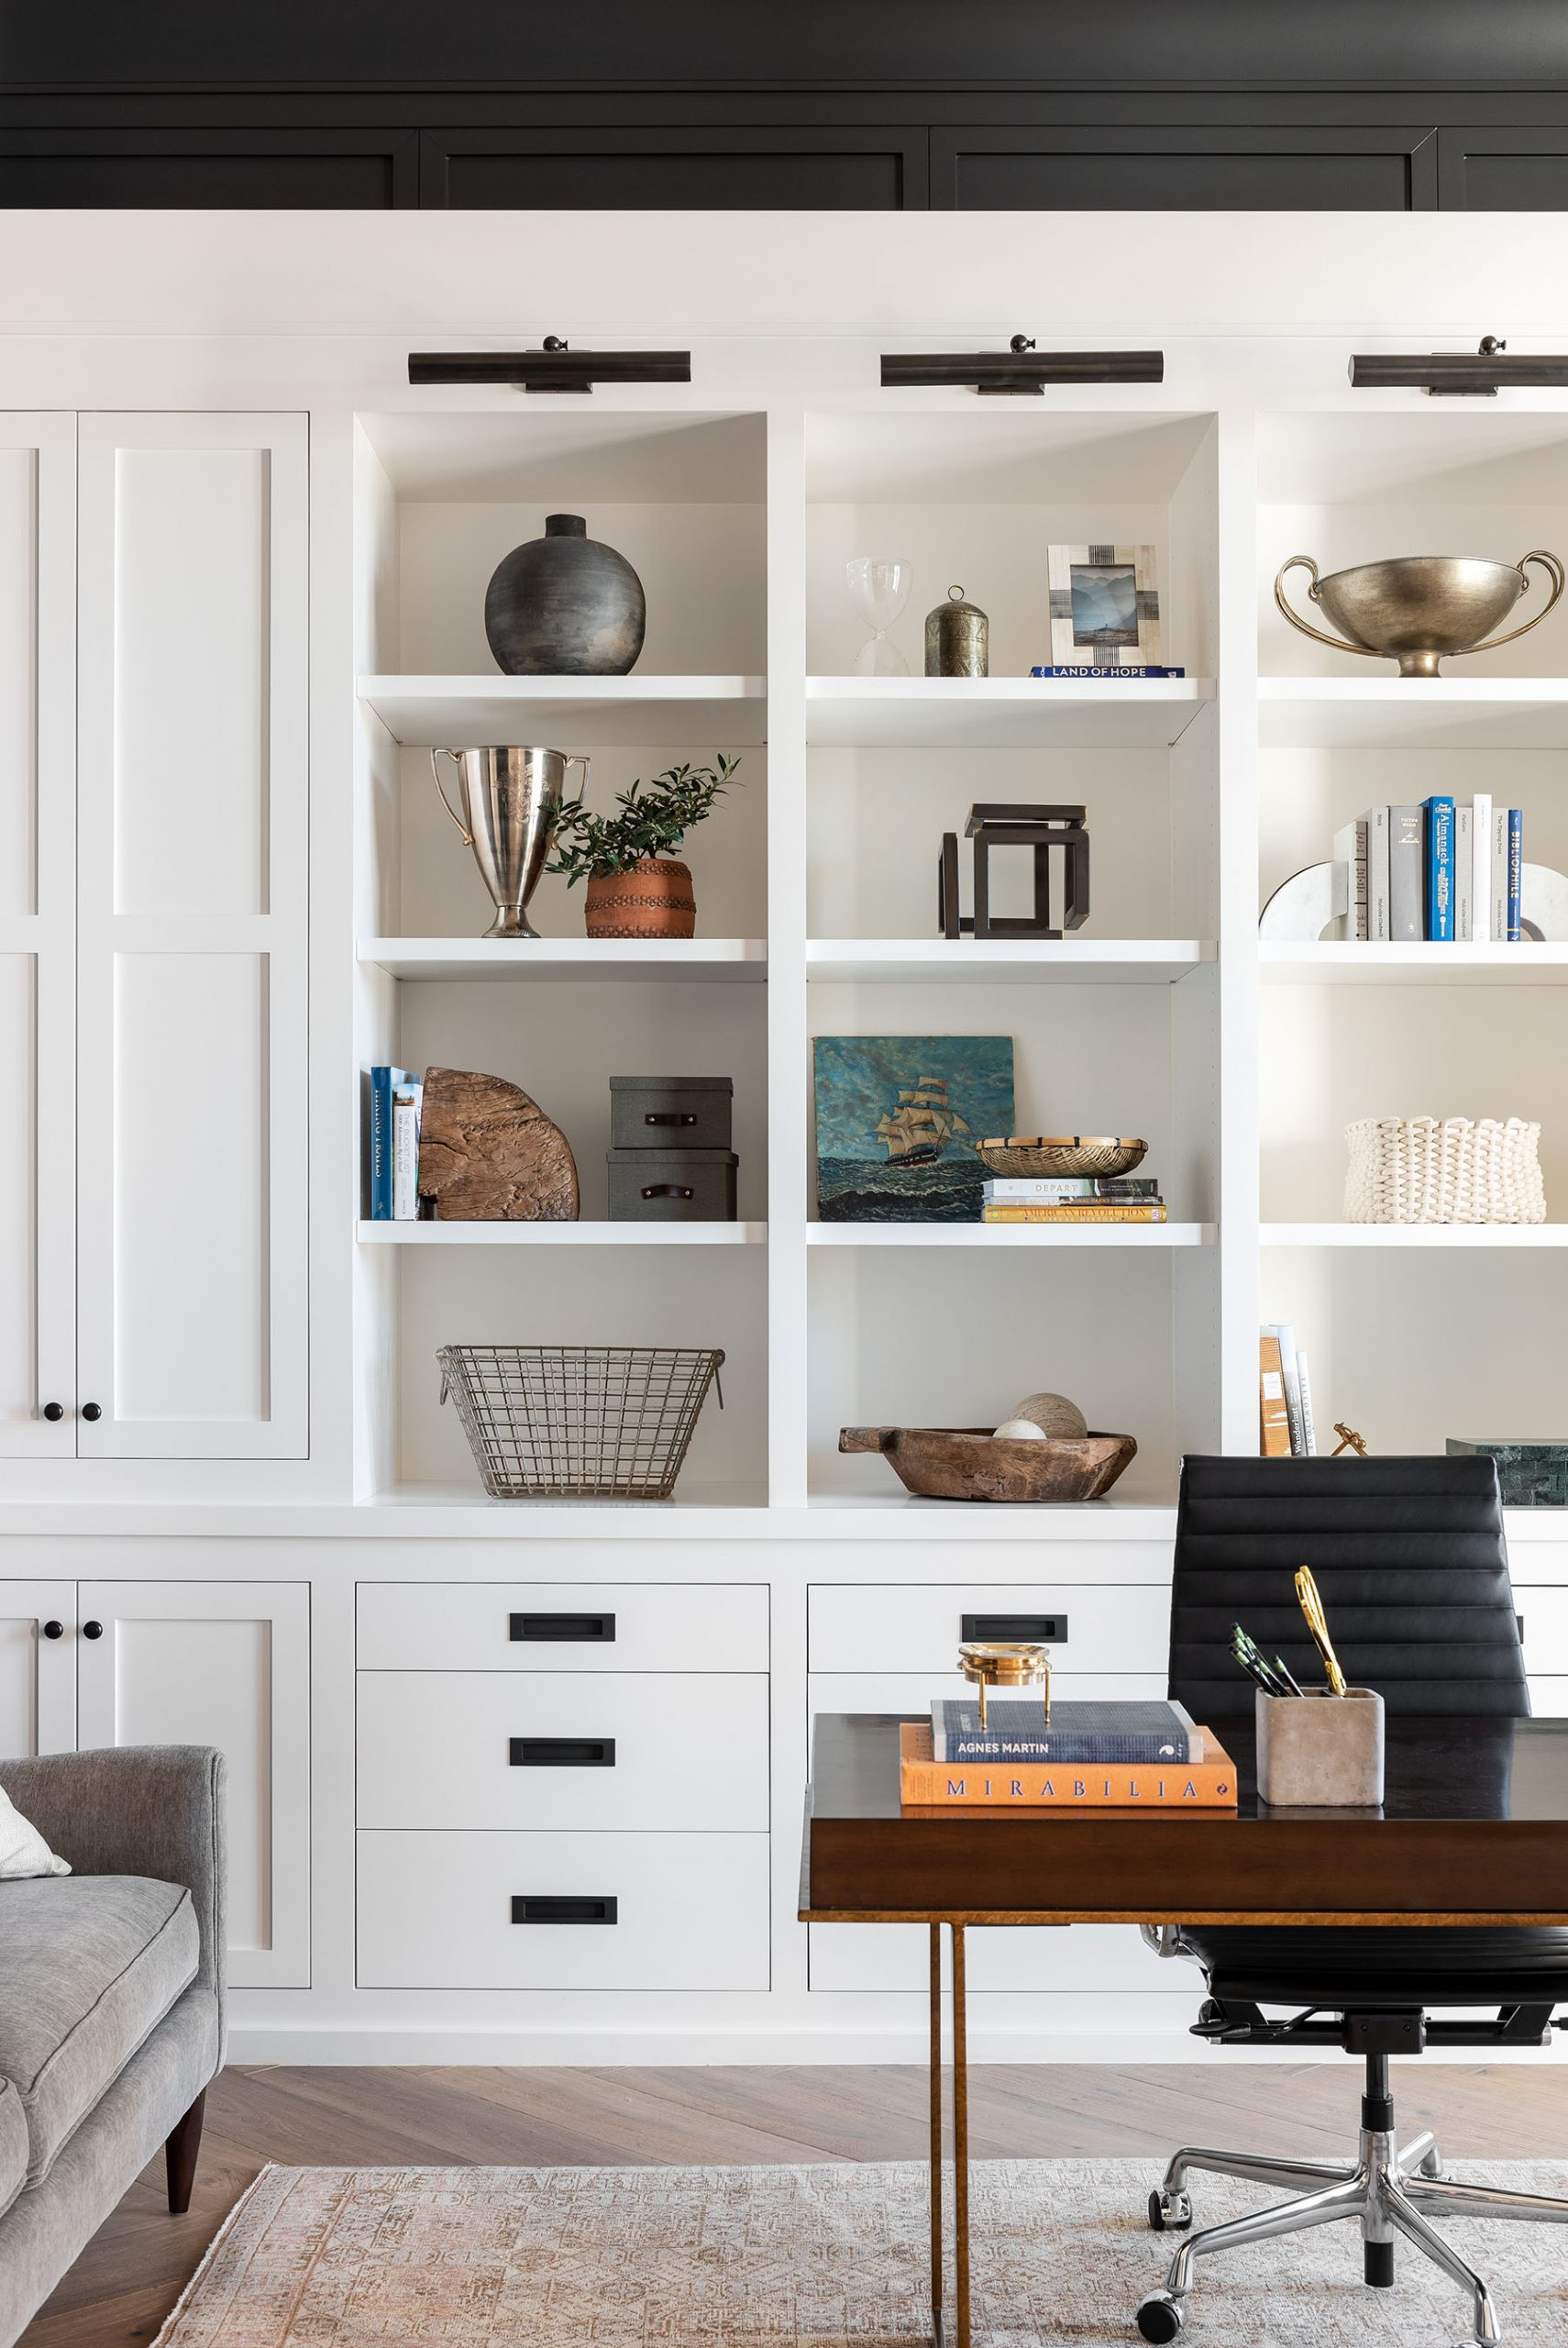 Our Step-By-Step Built-In Styling Guide